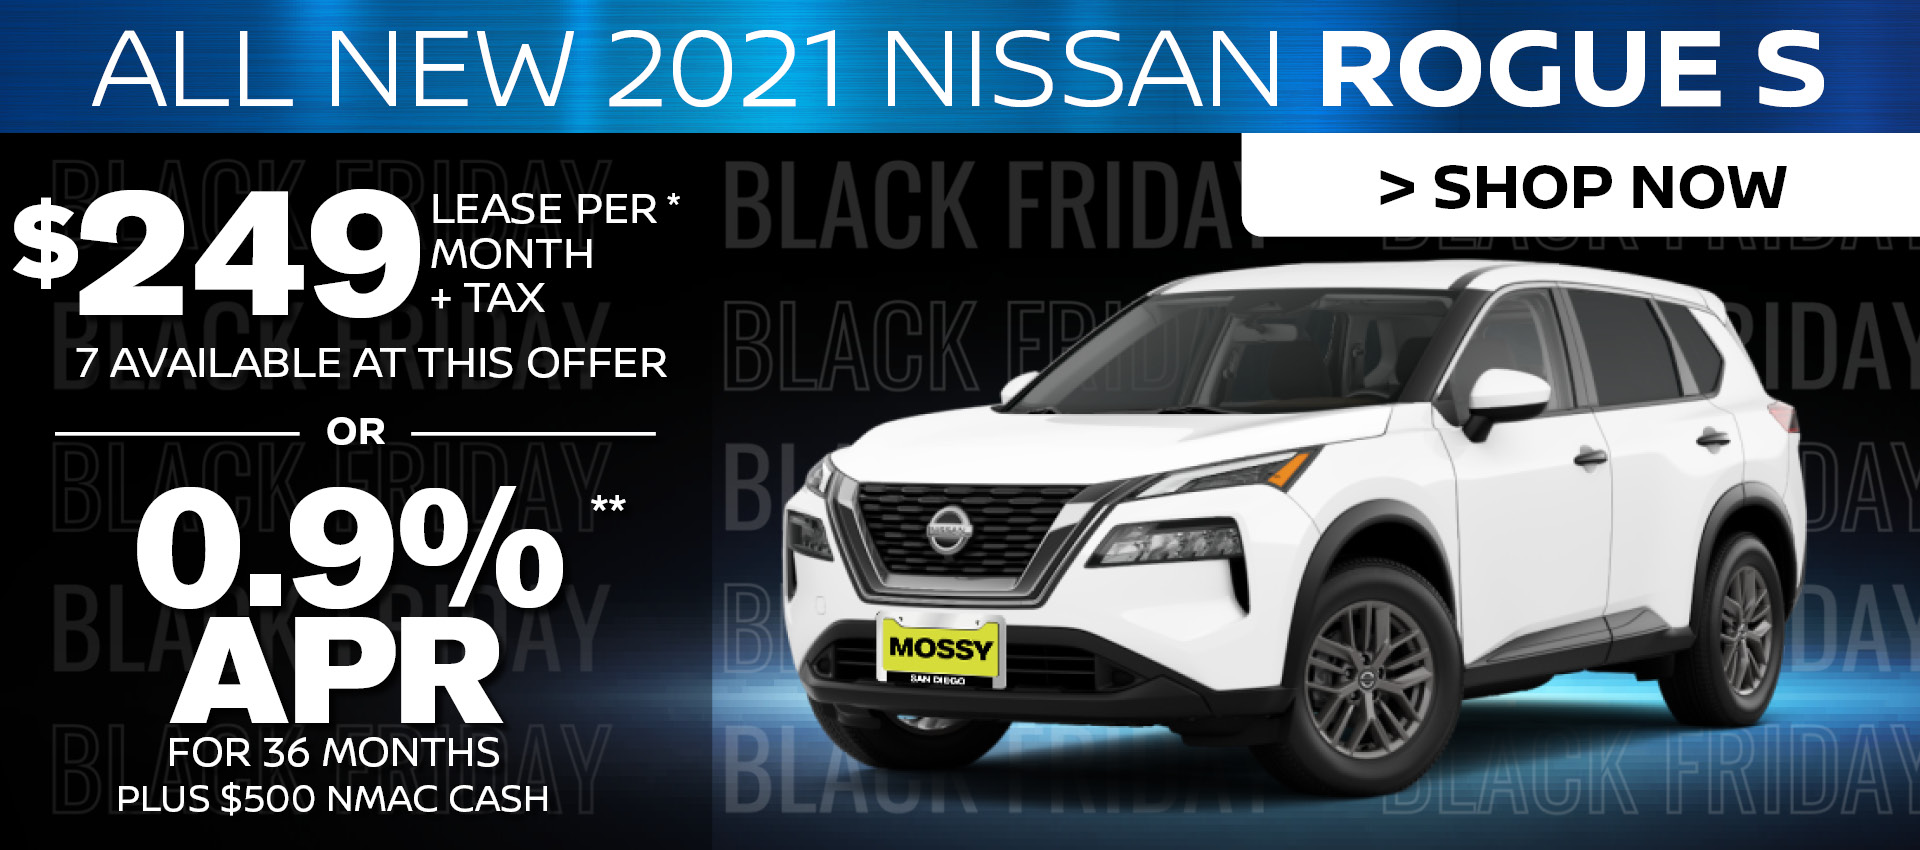 Mossy Nissan - 2021 Rogue HP